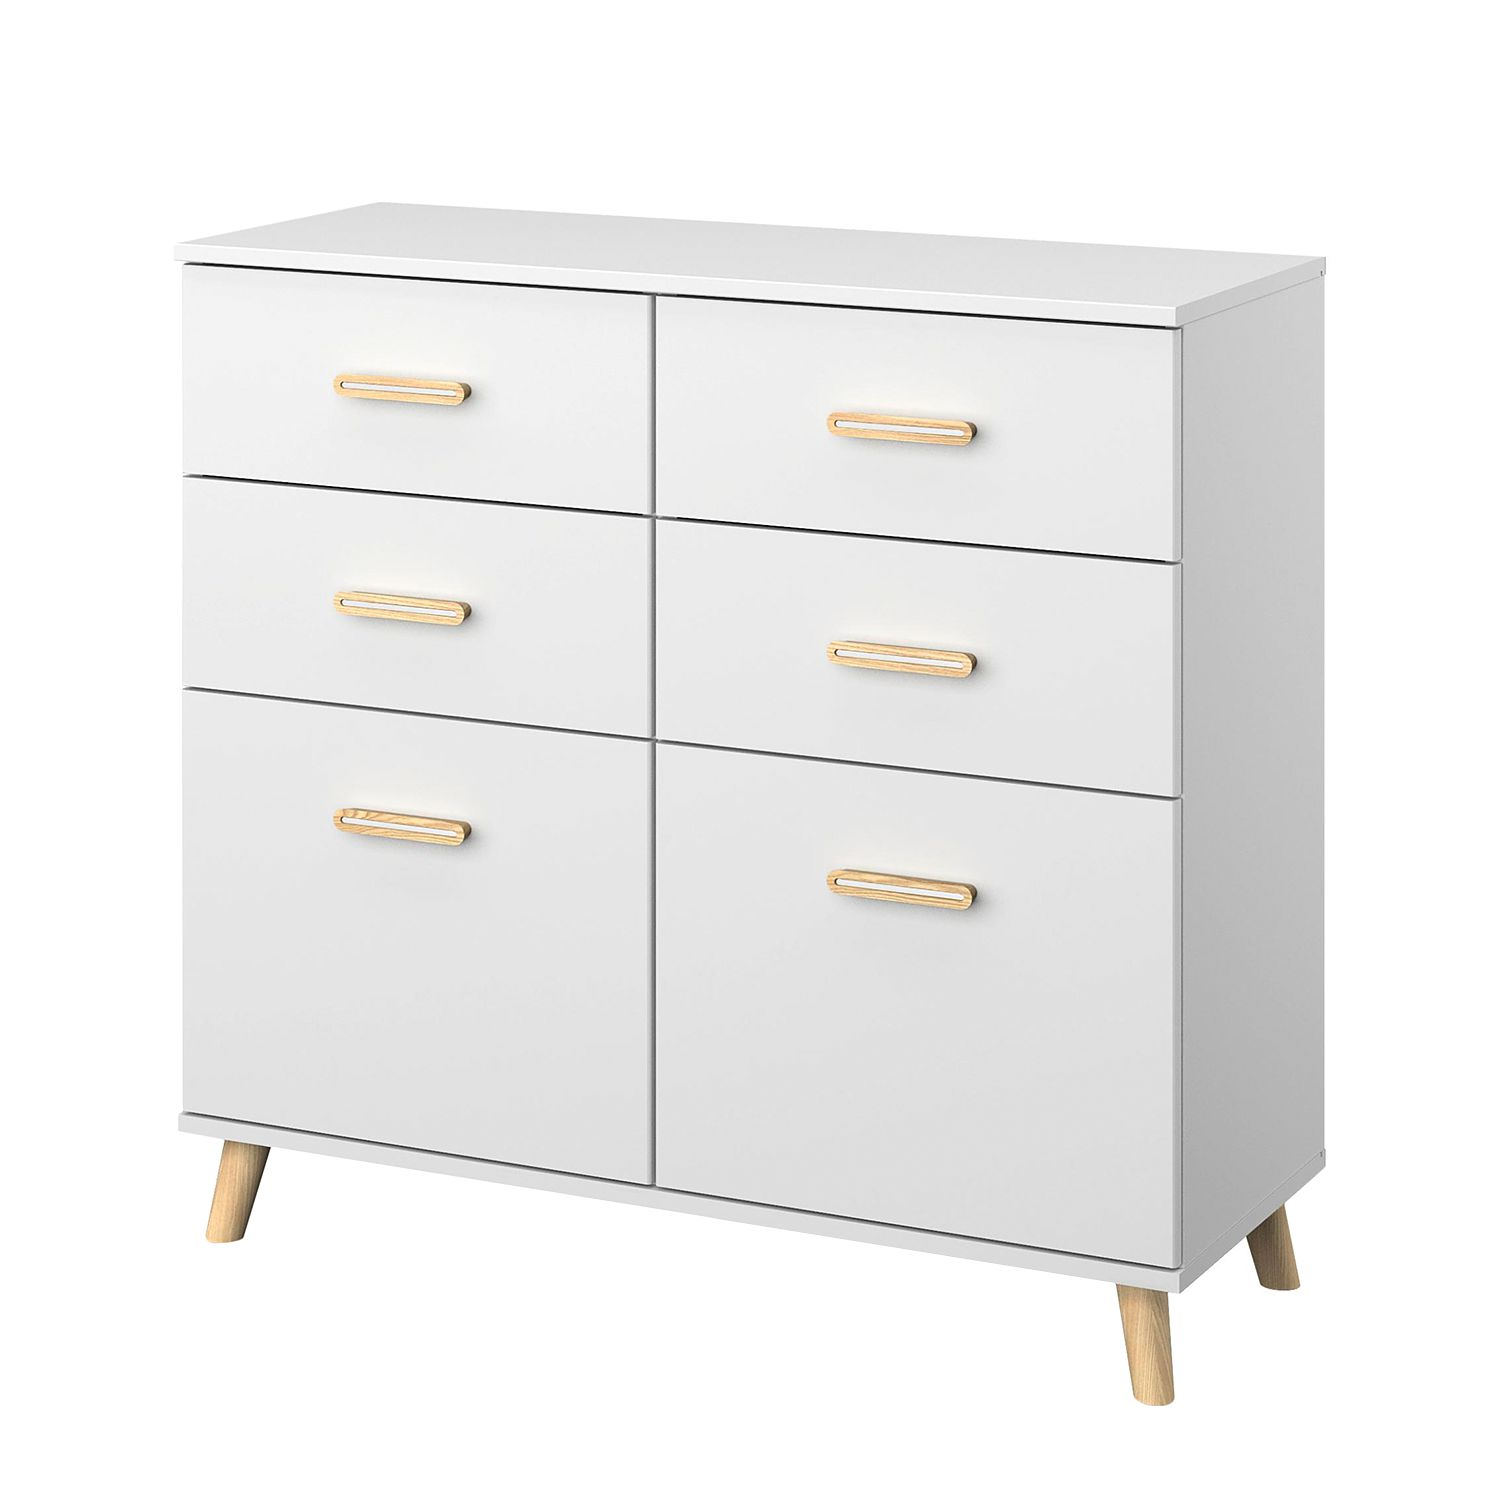 Commode Annett - Blanc alpin / Frêne de Coimbra - 93 cm, Rauch Packs